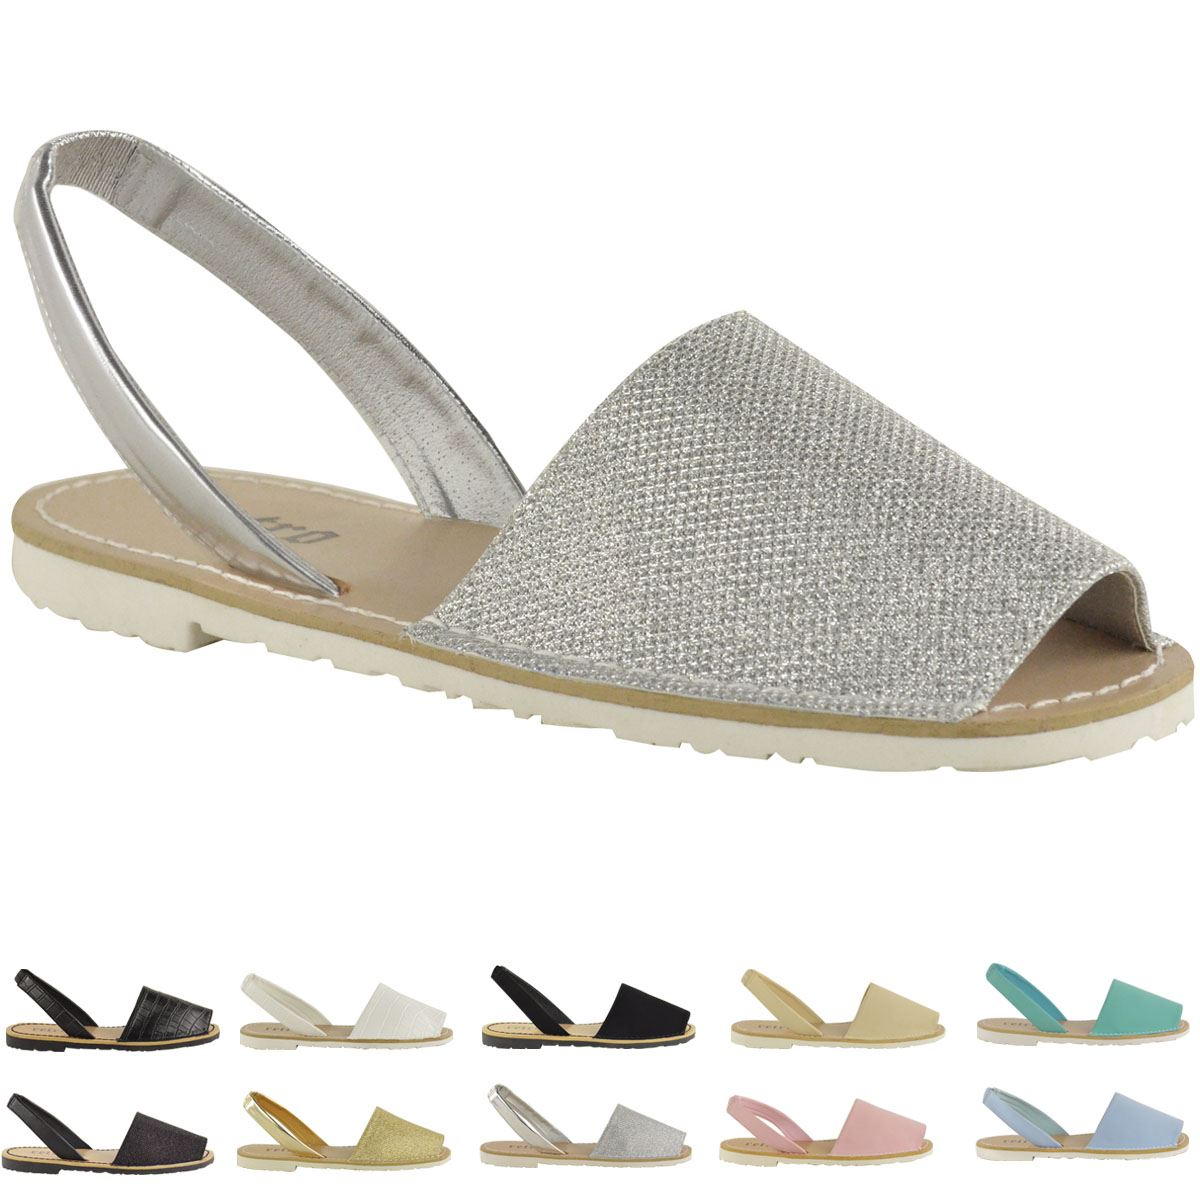 WOMENS-LADIES-SUMMER-MENORCAN-SANDALS-SLING-BACK-FLIP-FLOP-BEACH-SHOES ...